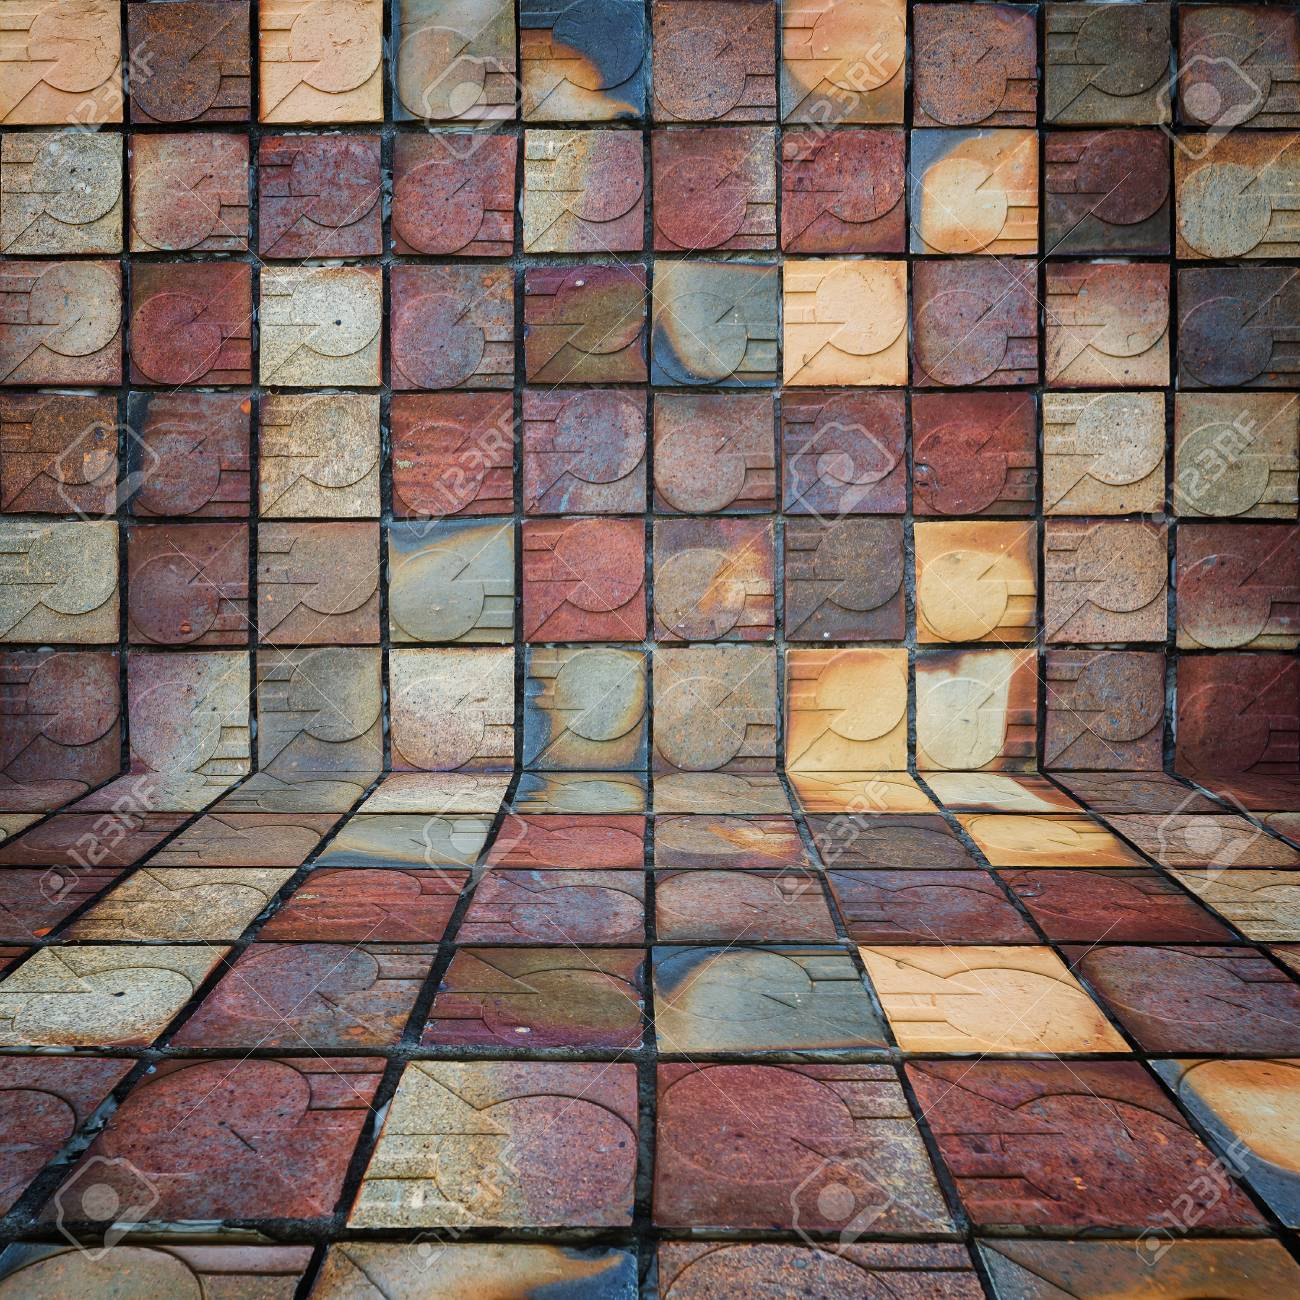 Beautiful Baked Clay Ceramic Tile Old Art Background Stock Photo Picture And Royalty Free Image Image 89436521